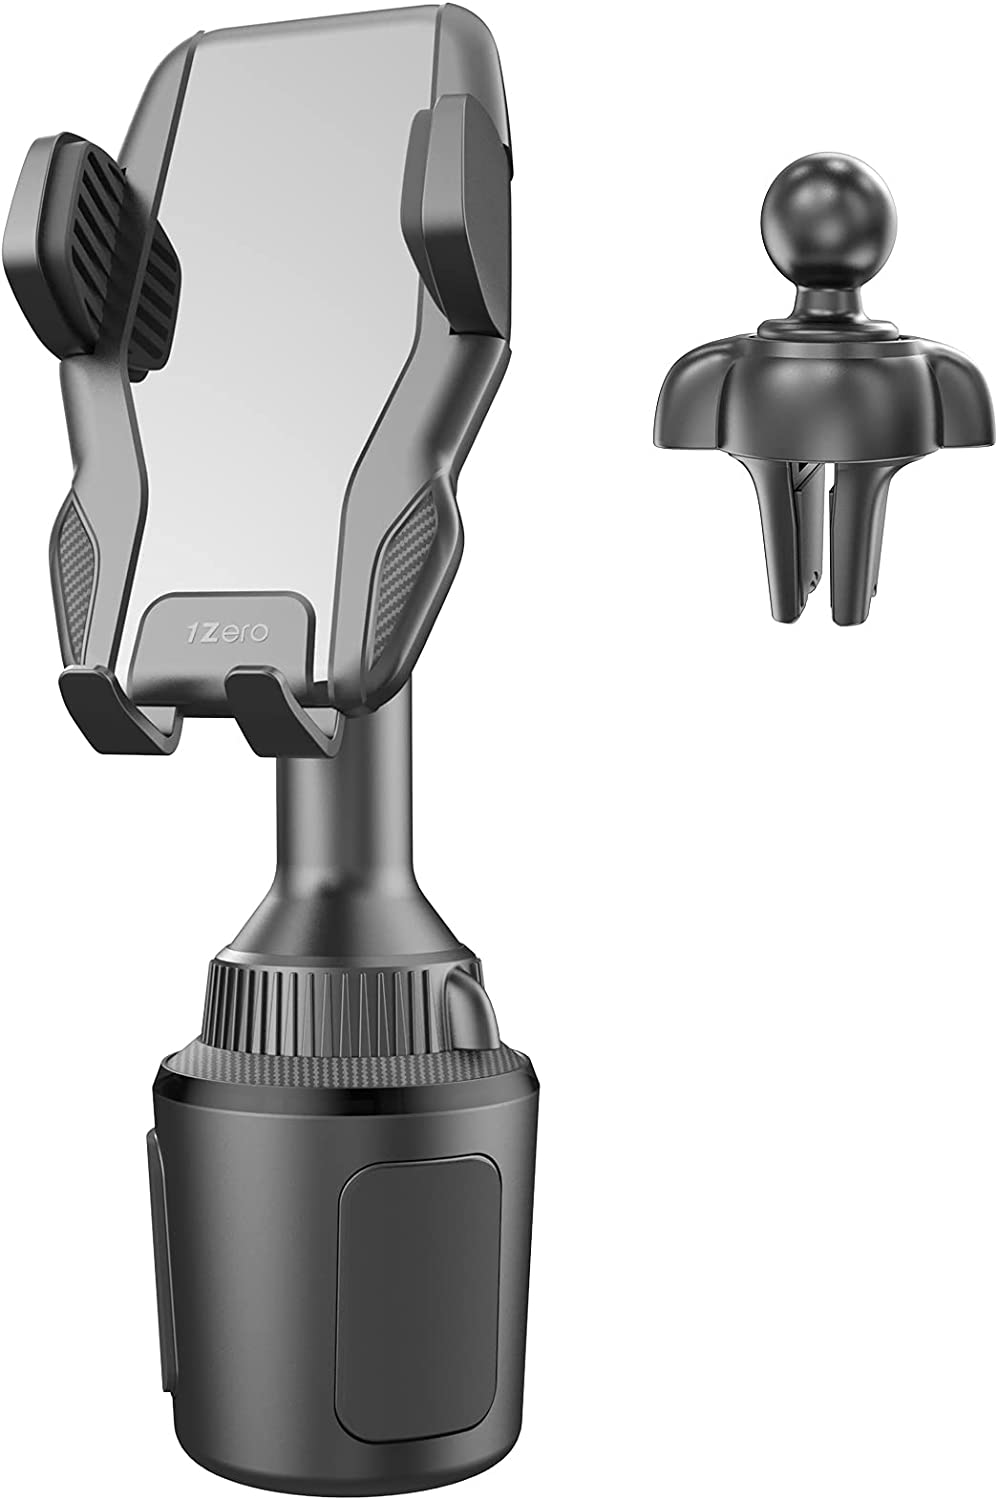 1Zero Solid Car Cup Holder Outstanding Max 55% OFF Phone Mount with in 1 Vent 2 Clip